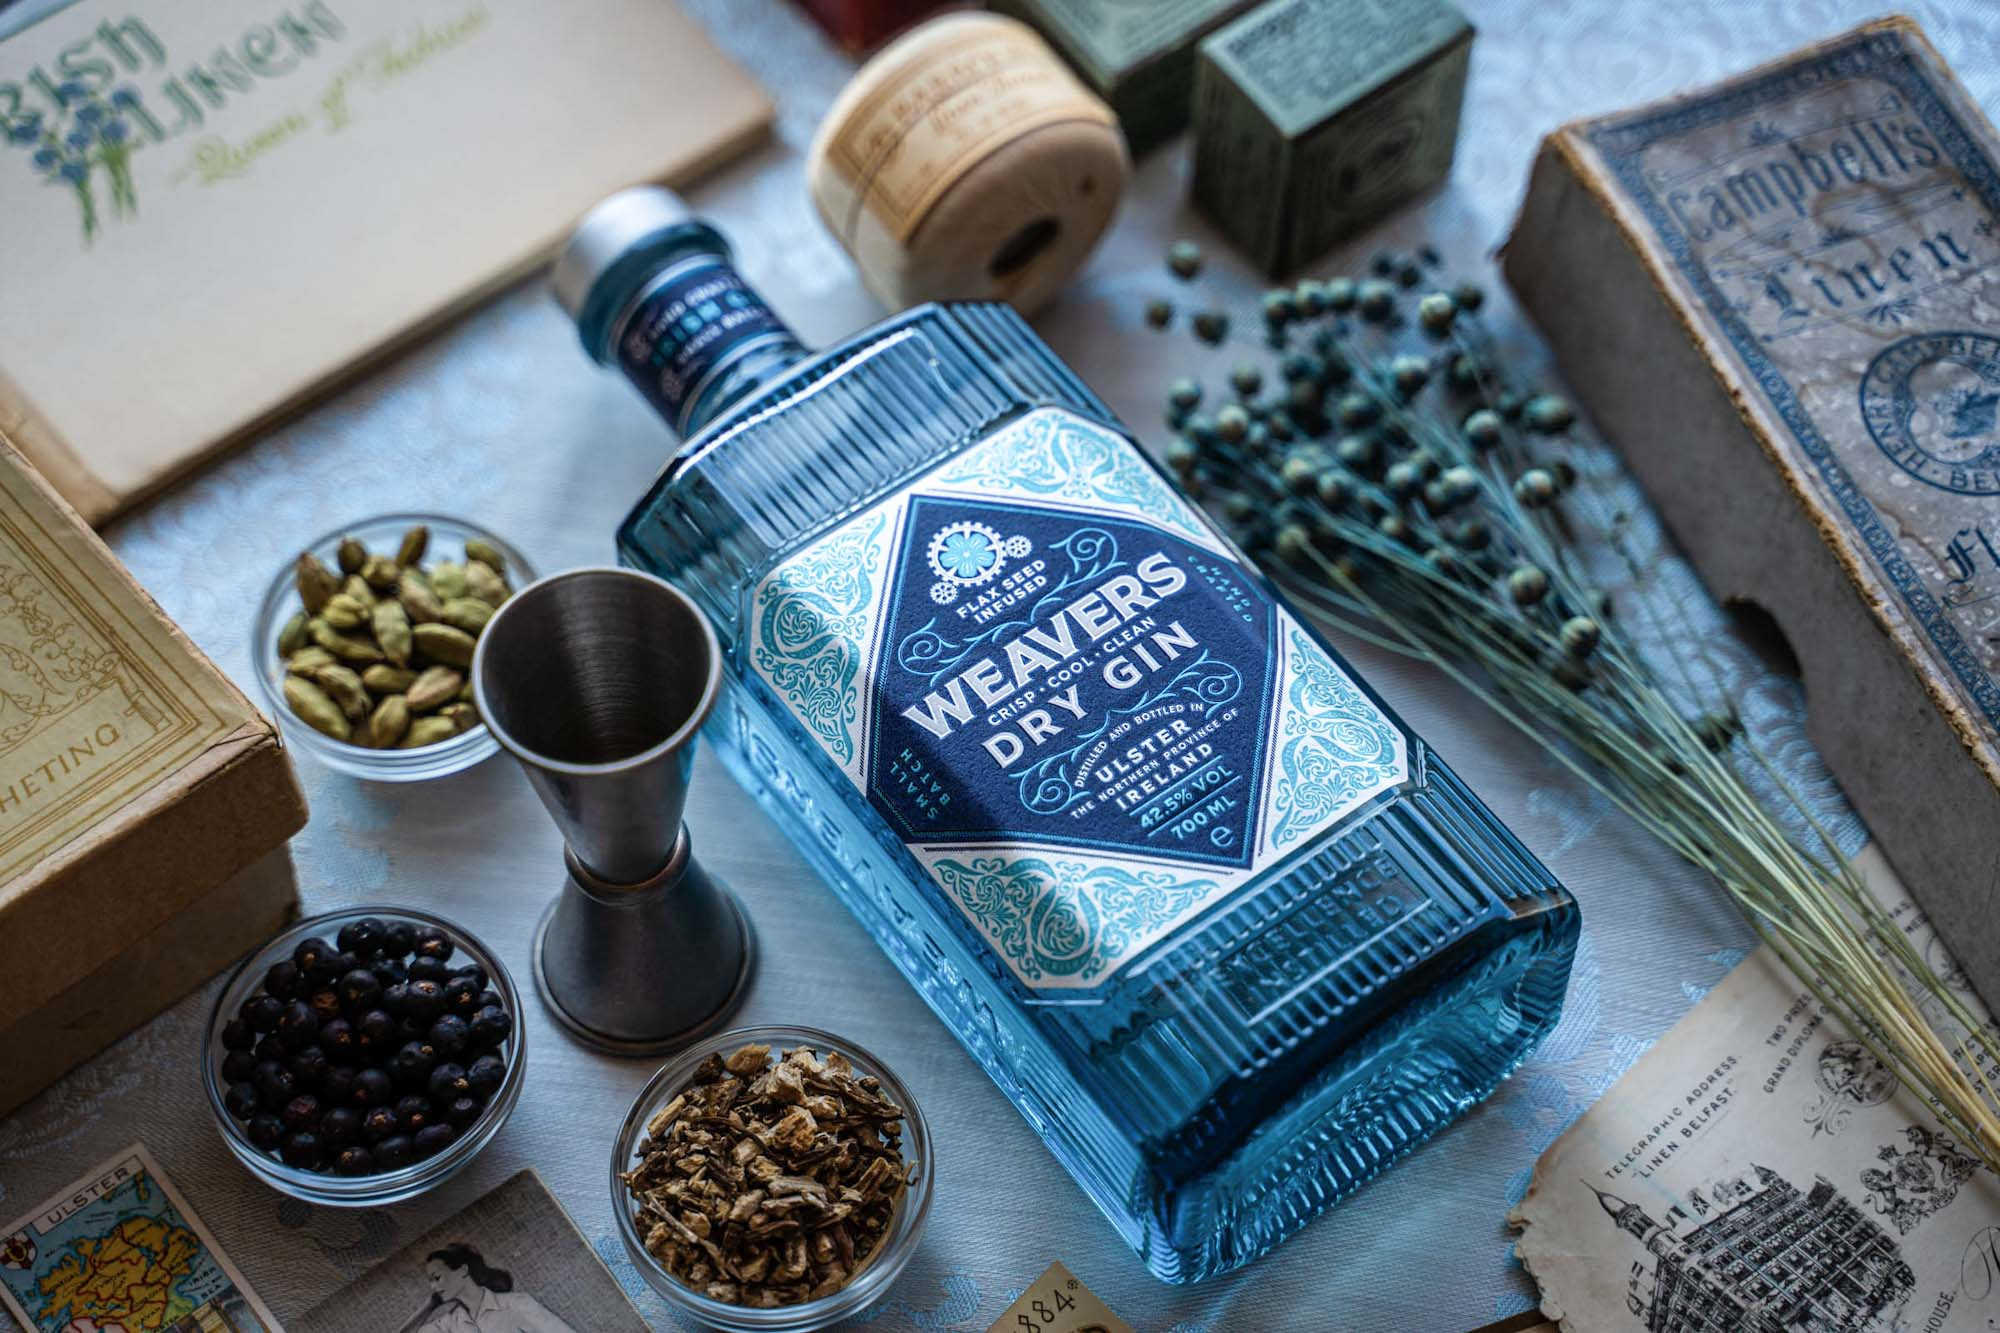 Weavers Gin bottle on linen tablecloth with botanicals and linen artefacts